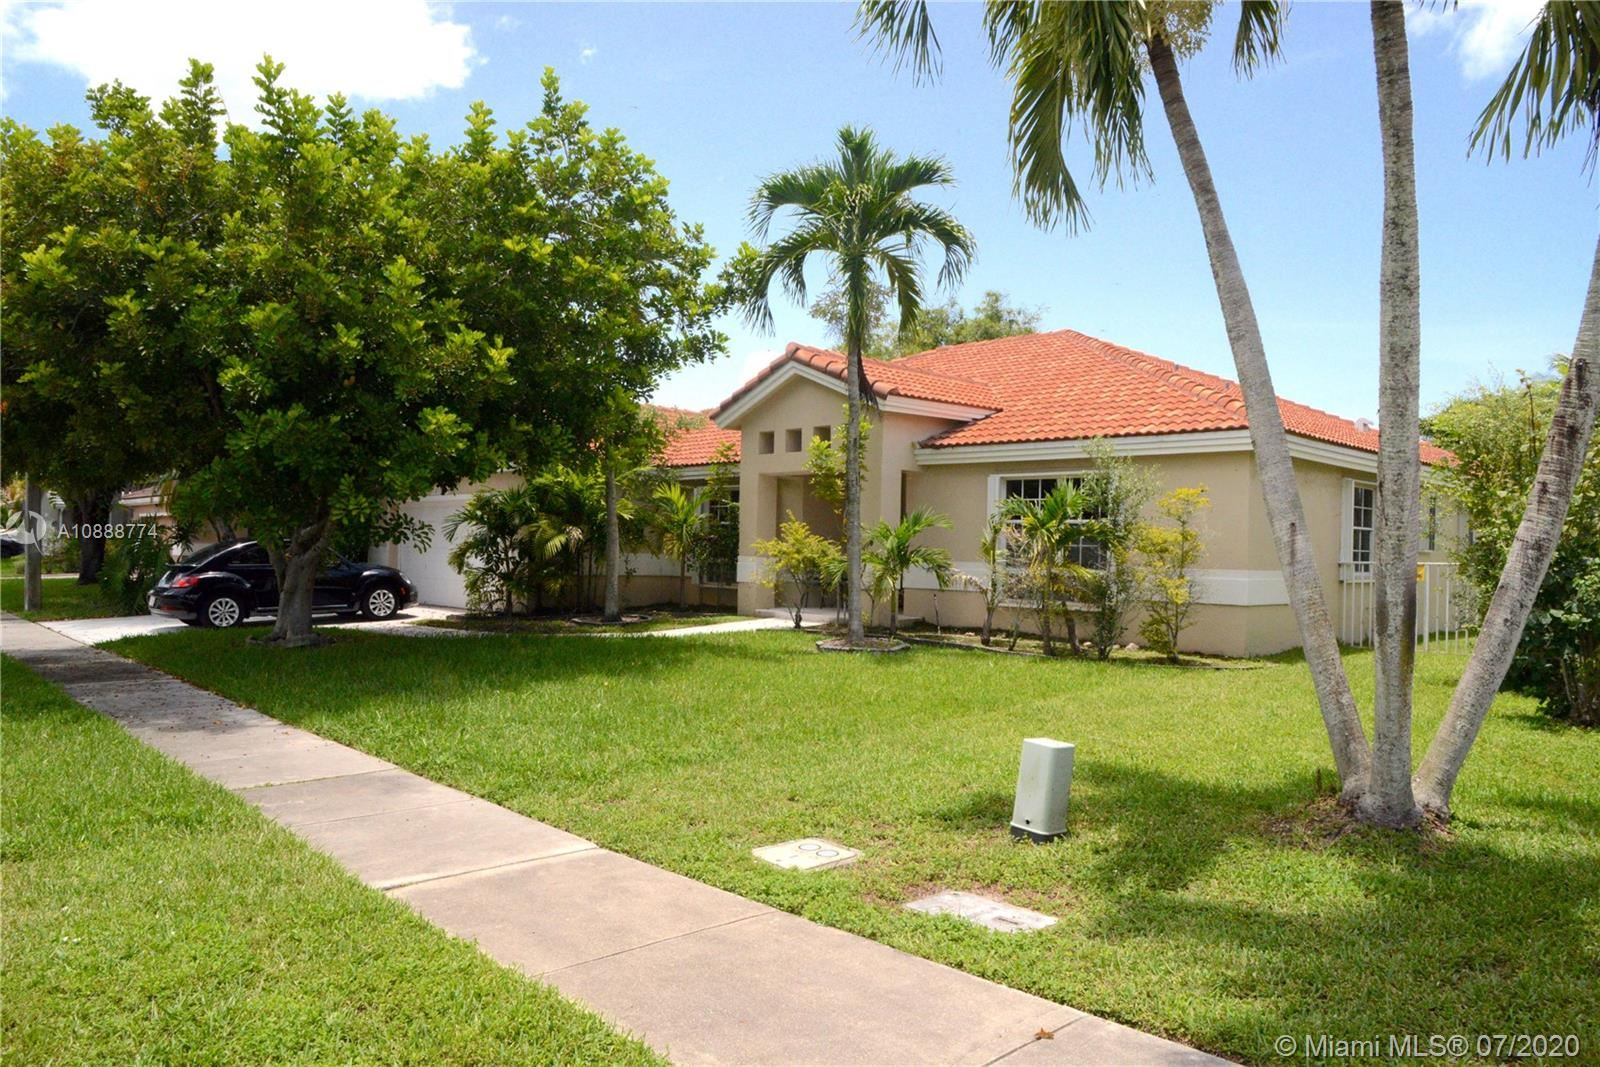 20133 NW 10th St, Pembroke Pines, FL 33029 - #: A10888774